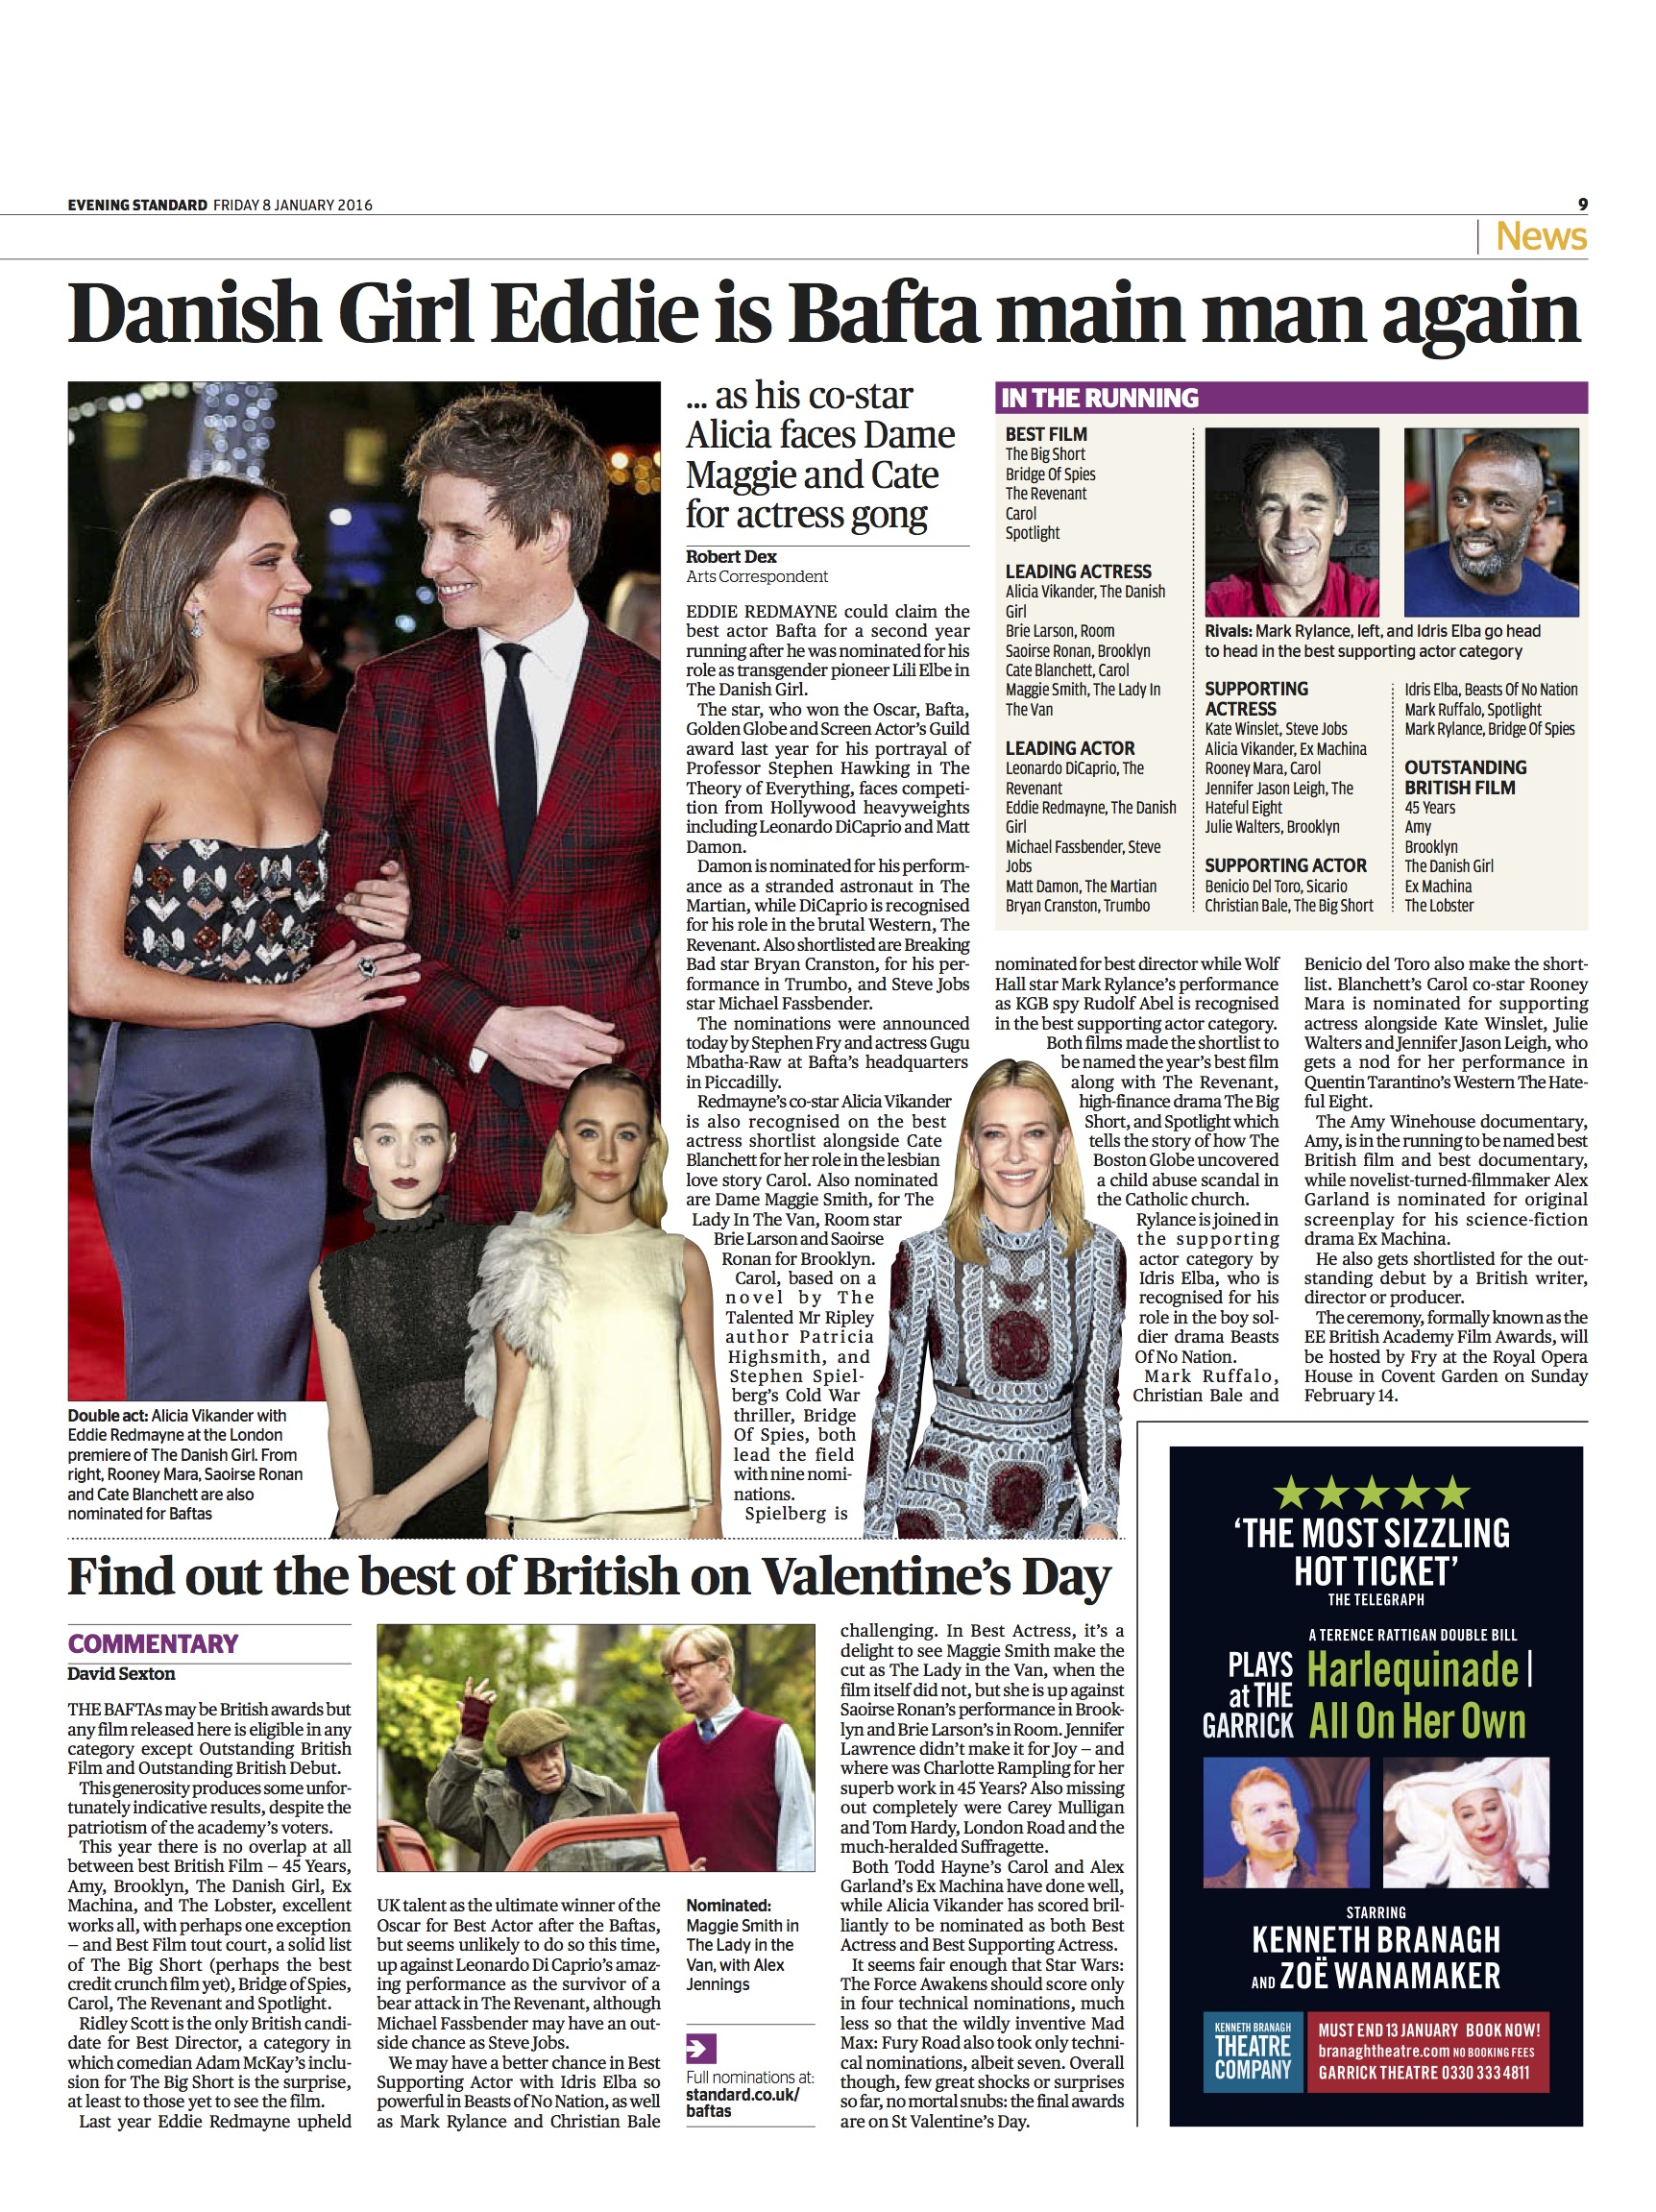 Eddie Redmayne Evening Standard.jpg